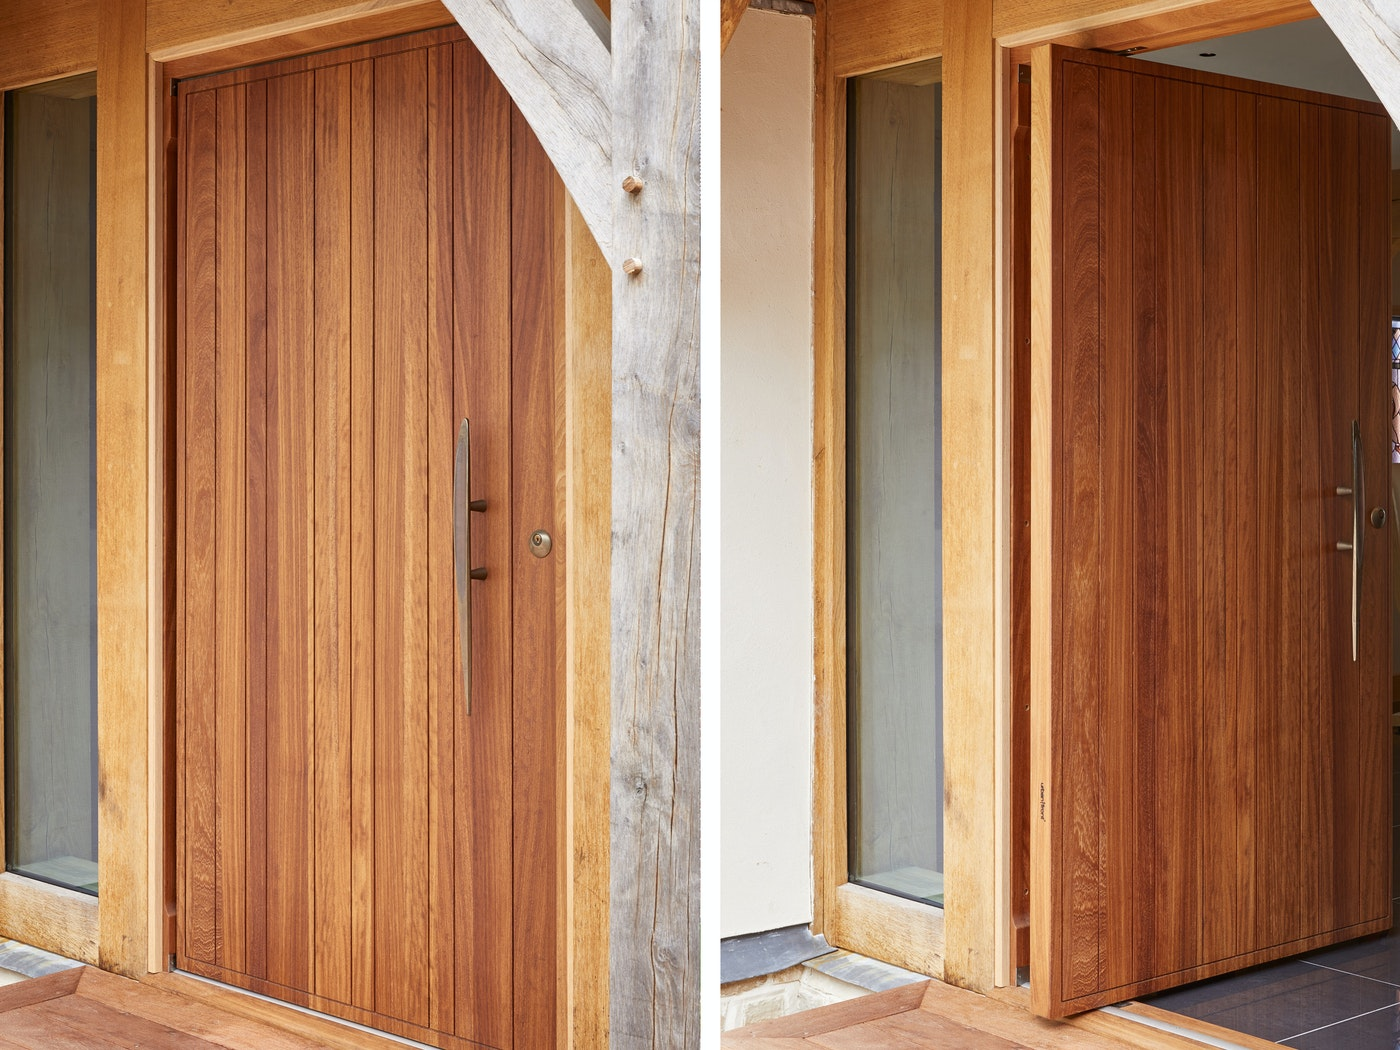 This Rondo V front door features a pivot opening